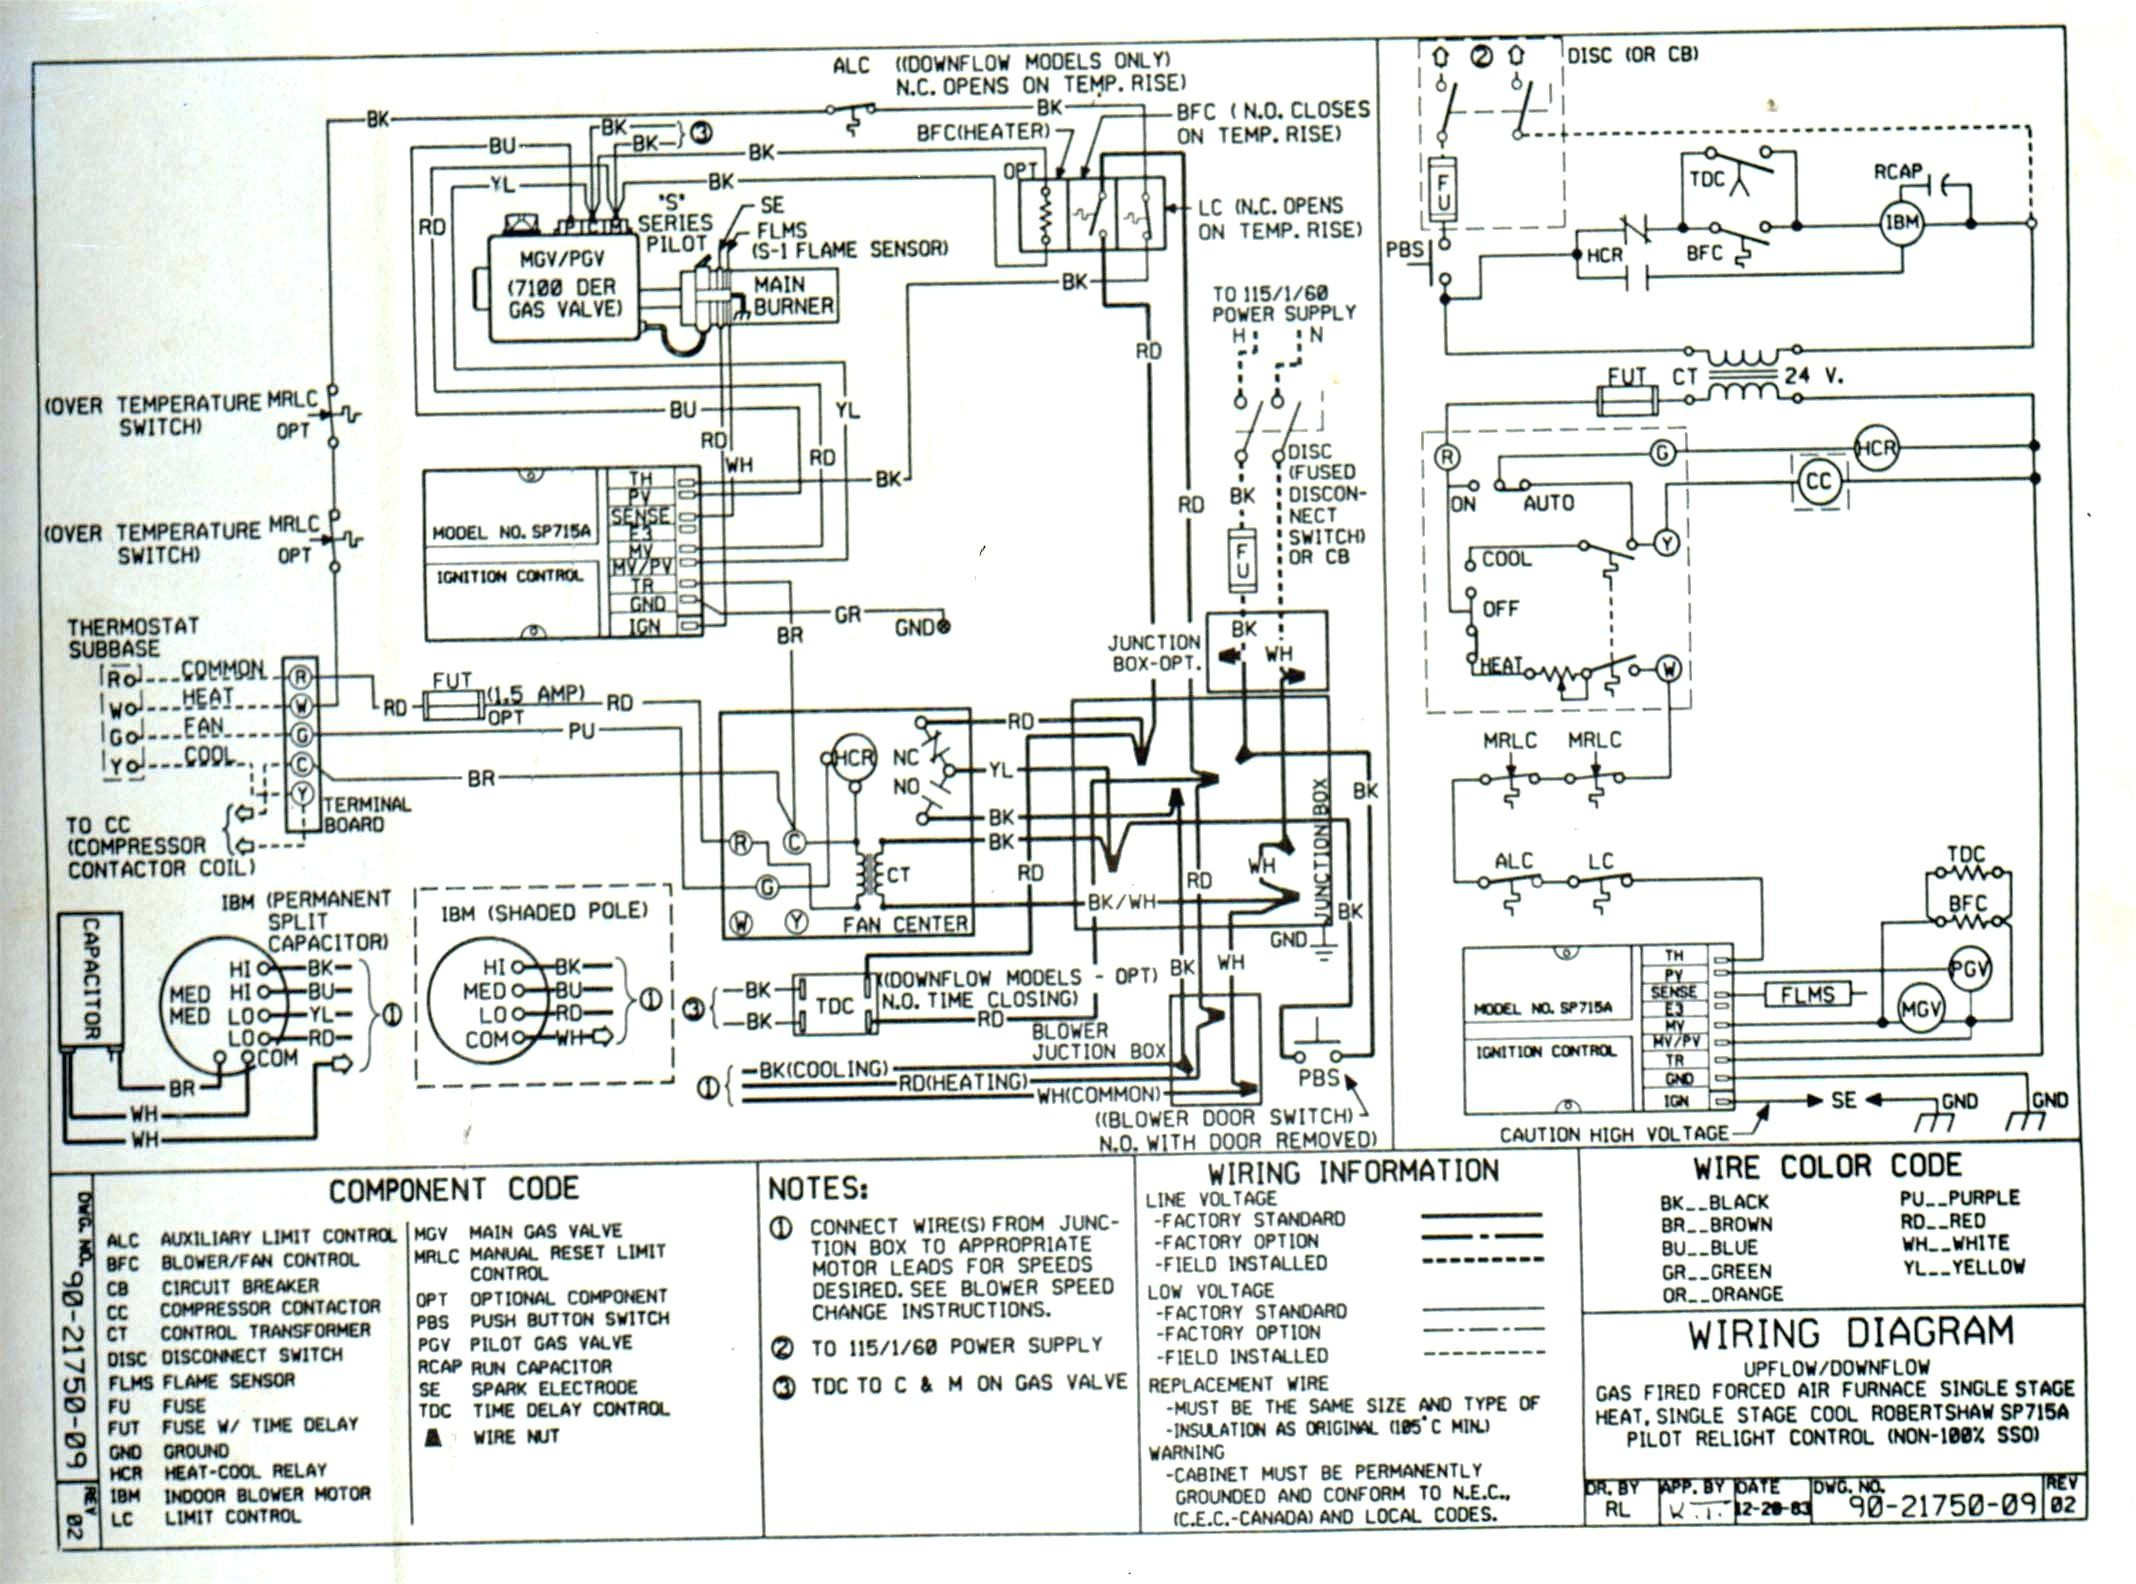 Electrical Wiring Diagram Pdf Ford Ranger Electric Vehicle 2001 Wiring